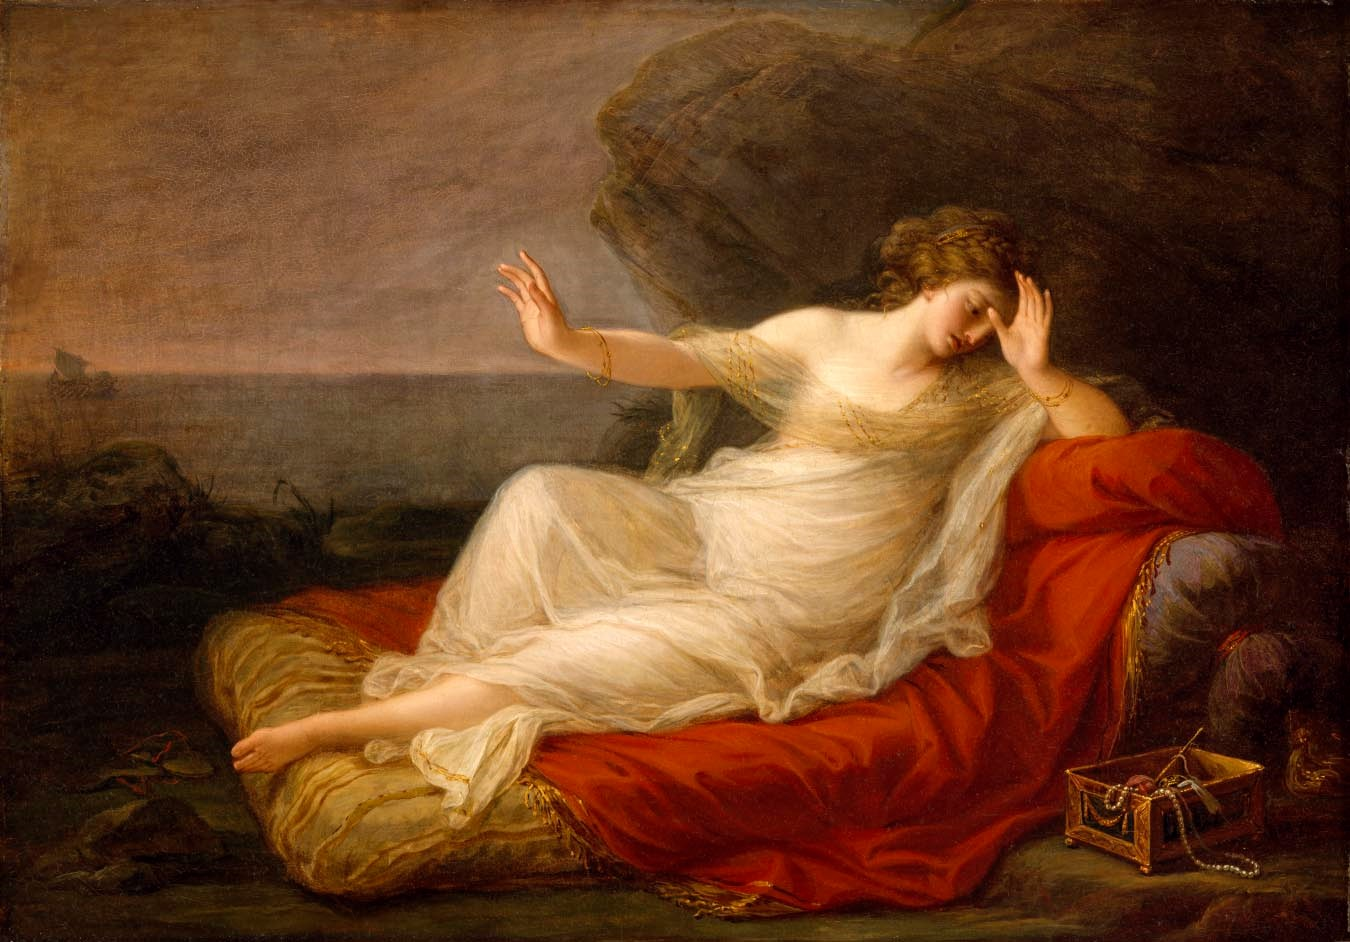 Angelica Kauffmann, Ariadne Abandoned by Theseus, 1774